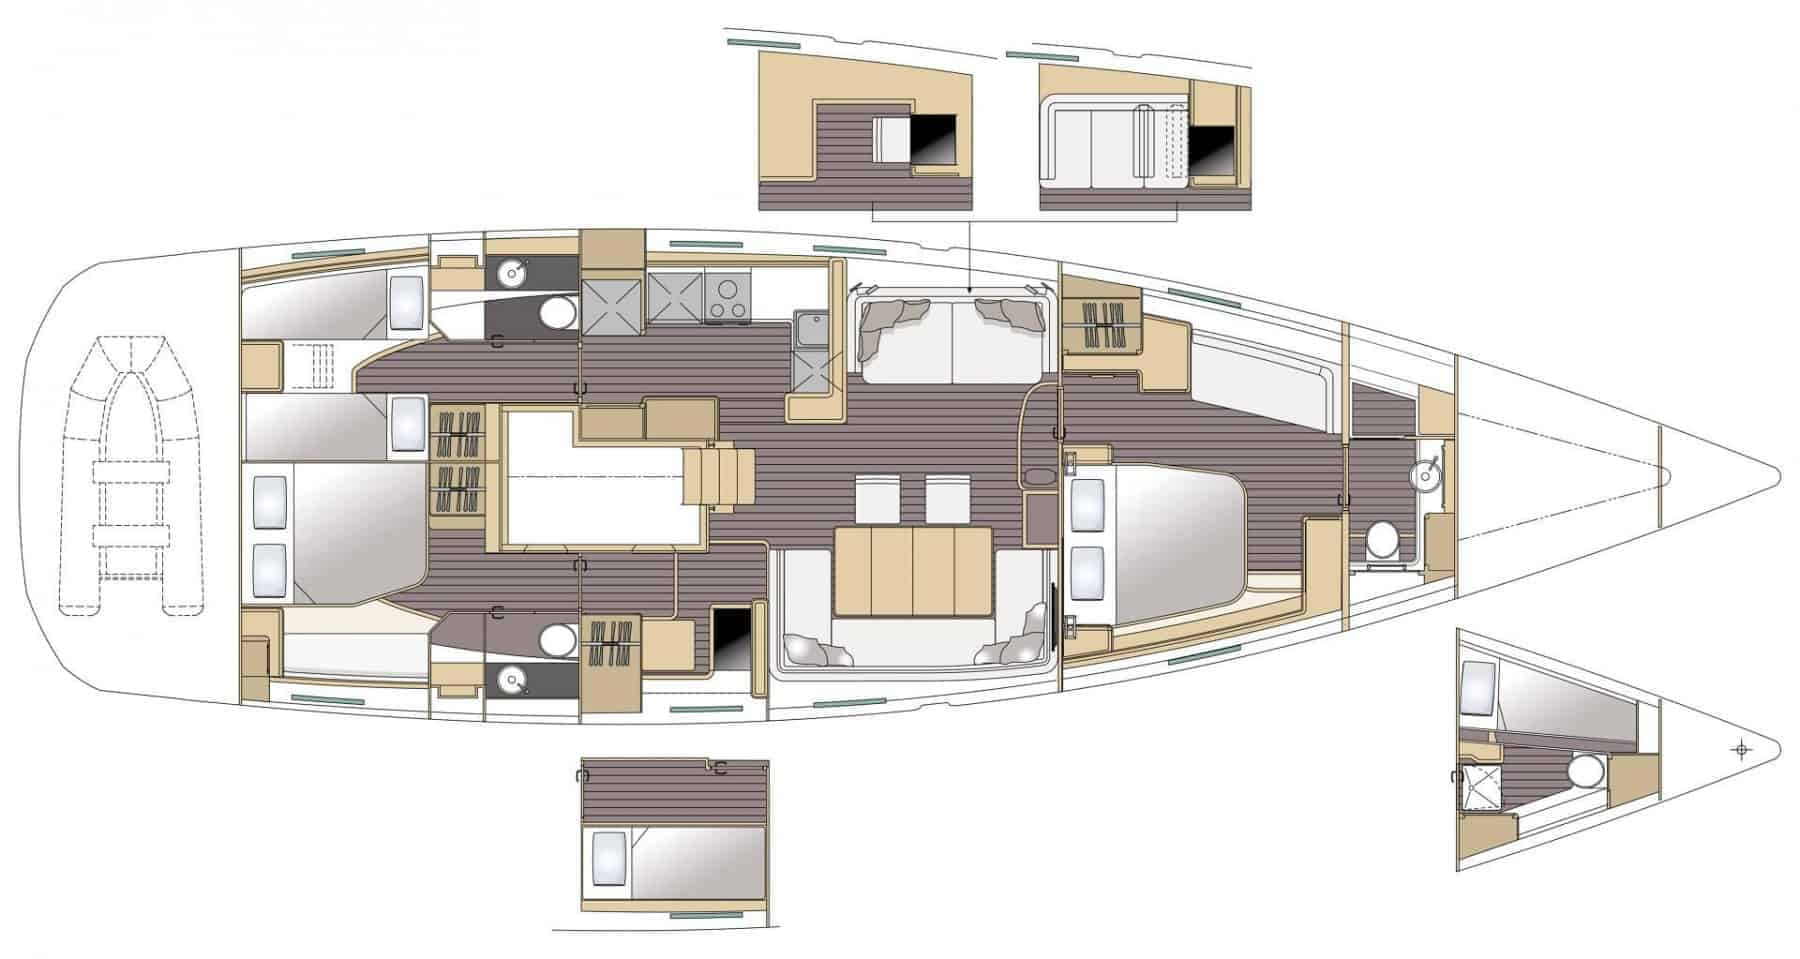 Jeanneau-64-layout-2-charter-ownership-yacht